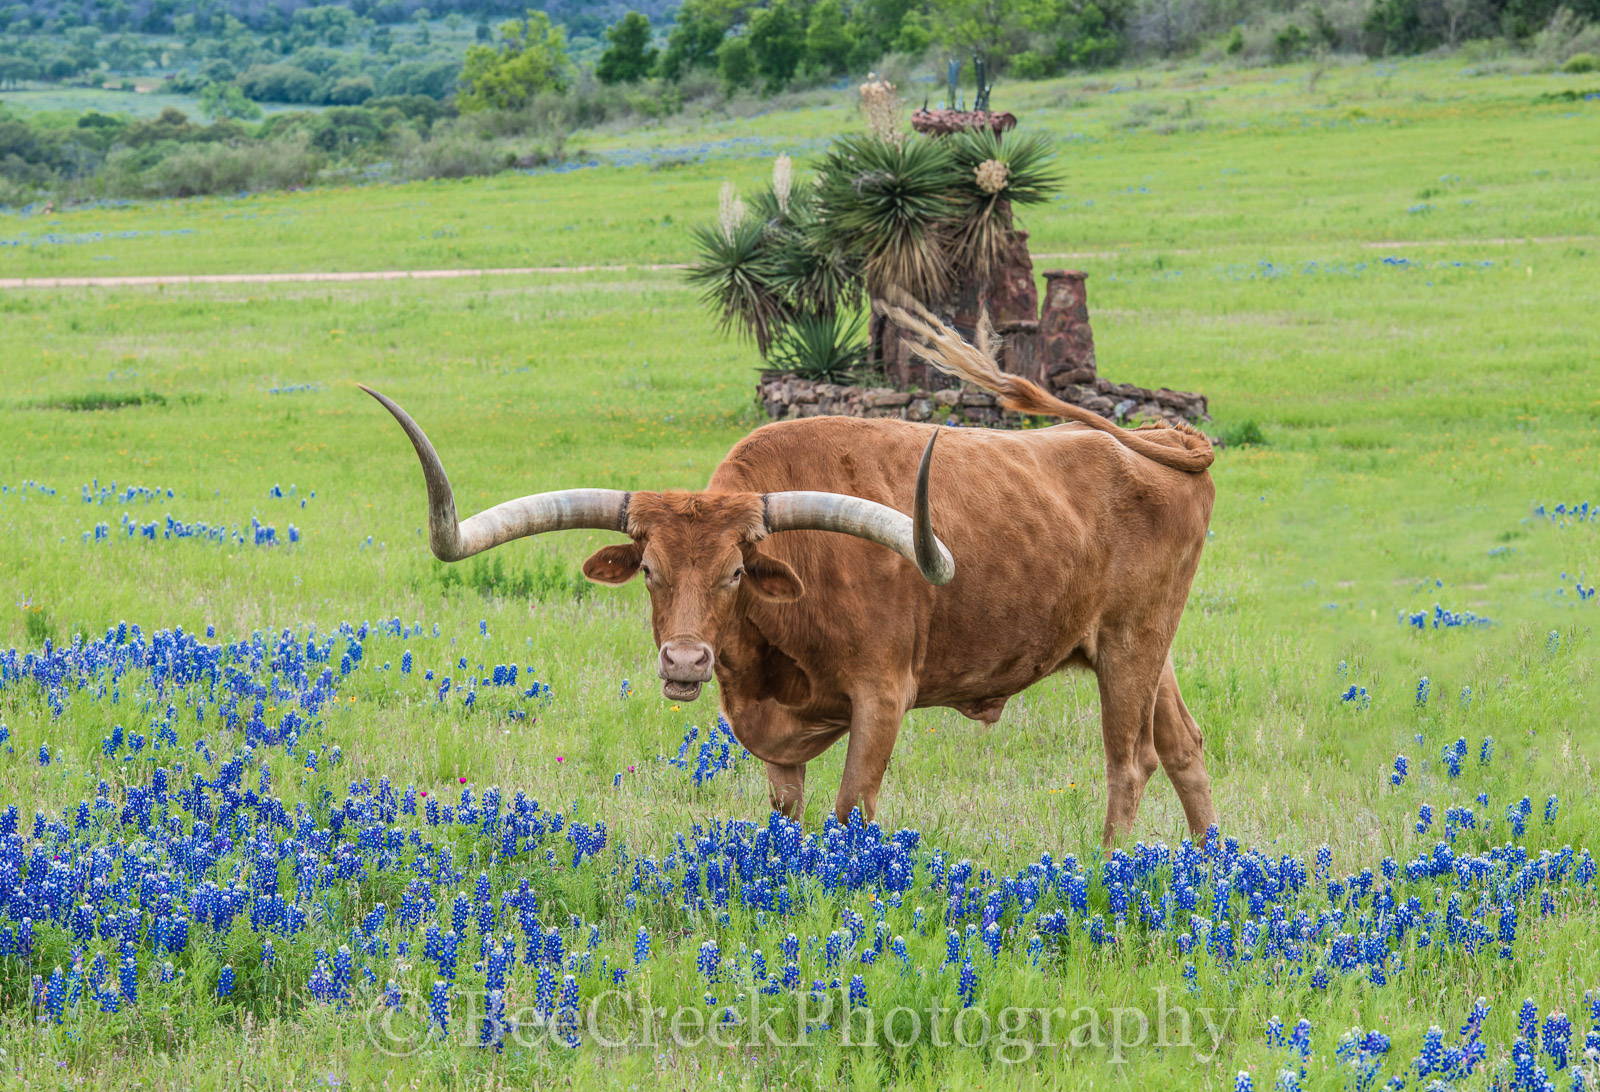 Longhorn with Bluebonnets - Captured this longhorn off the beaten path near Llano with some bluebonnets in the spring time.